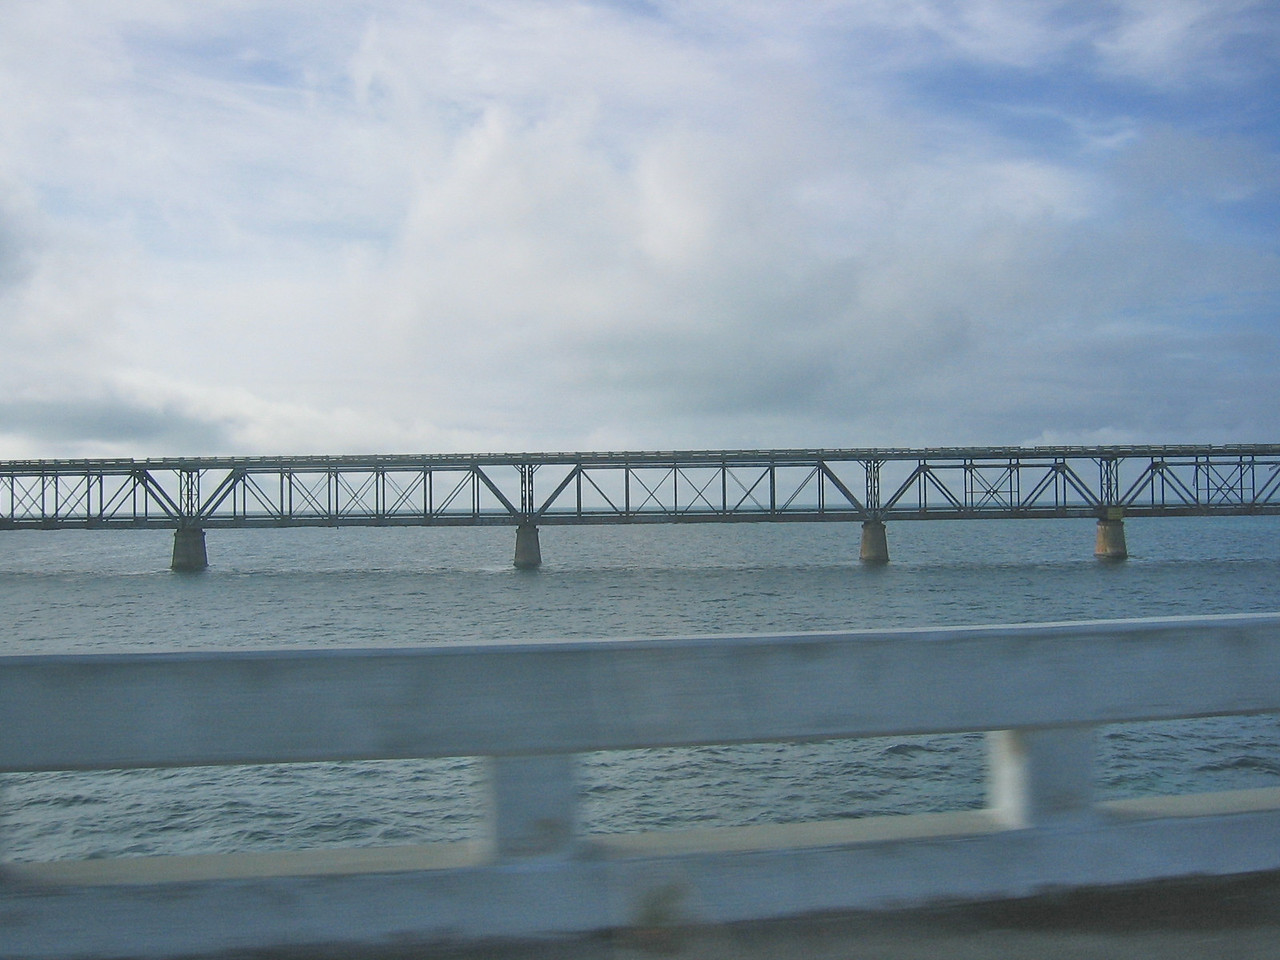 Part of the original railroad down to the keys from the mainland.